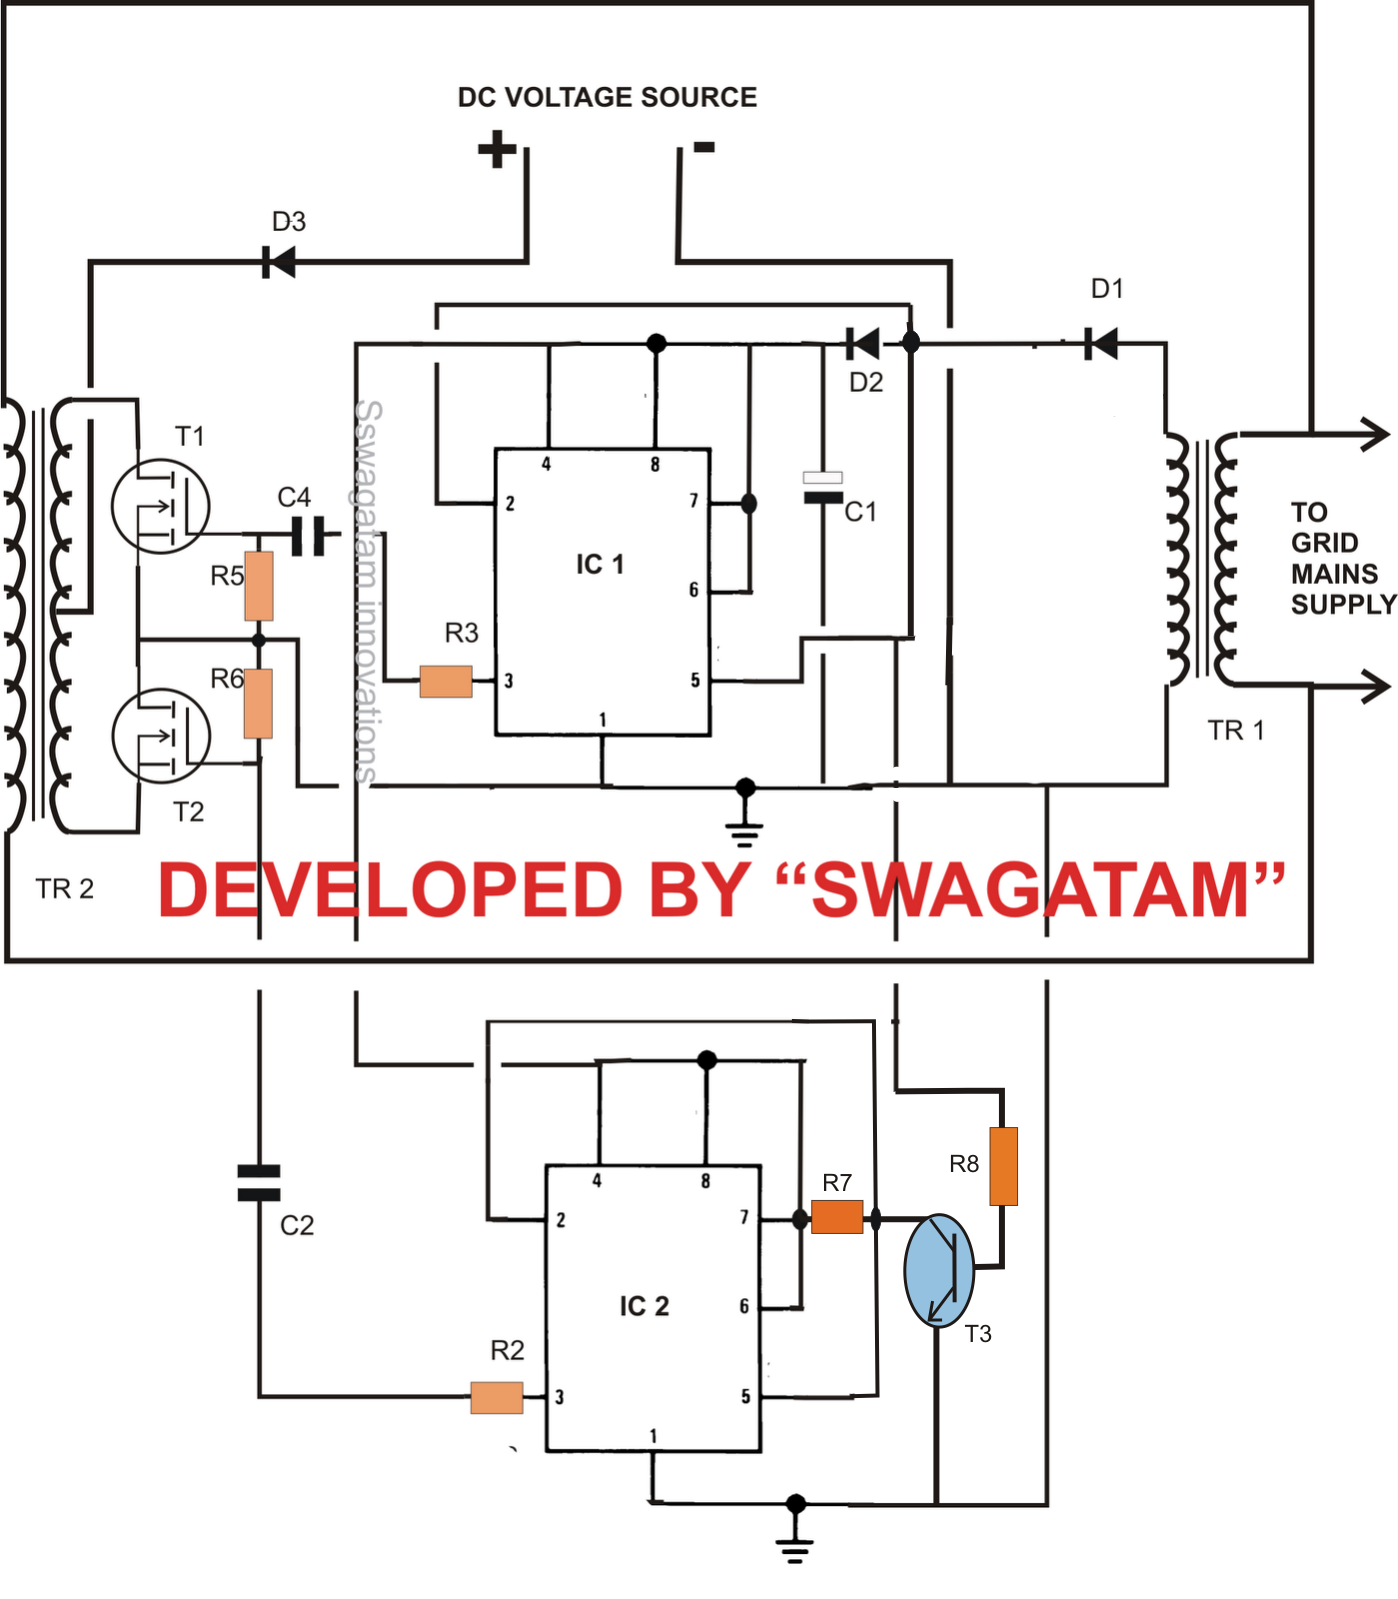 Solar Inverter Free Circuit Diagram Oscillator Download Wiring Schematic Pictures Of